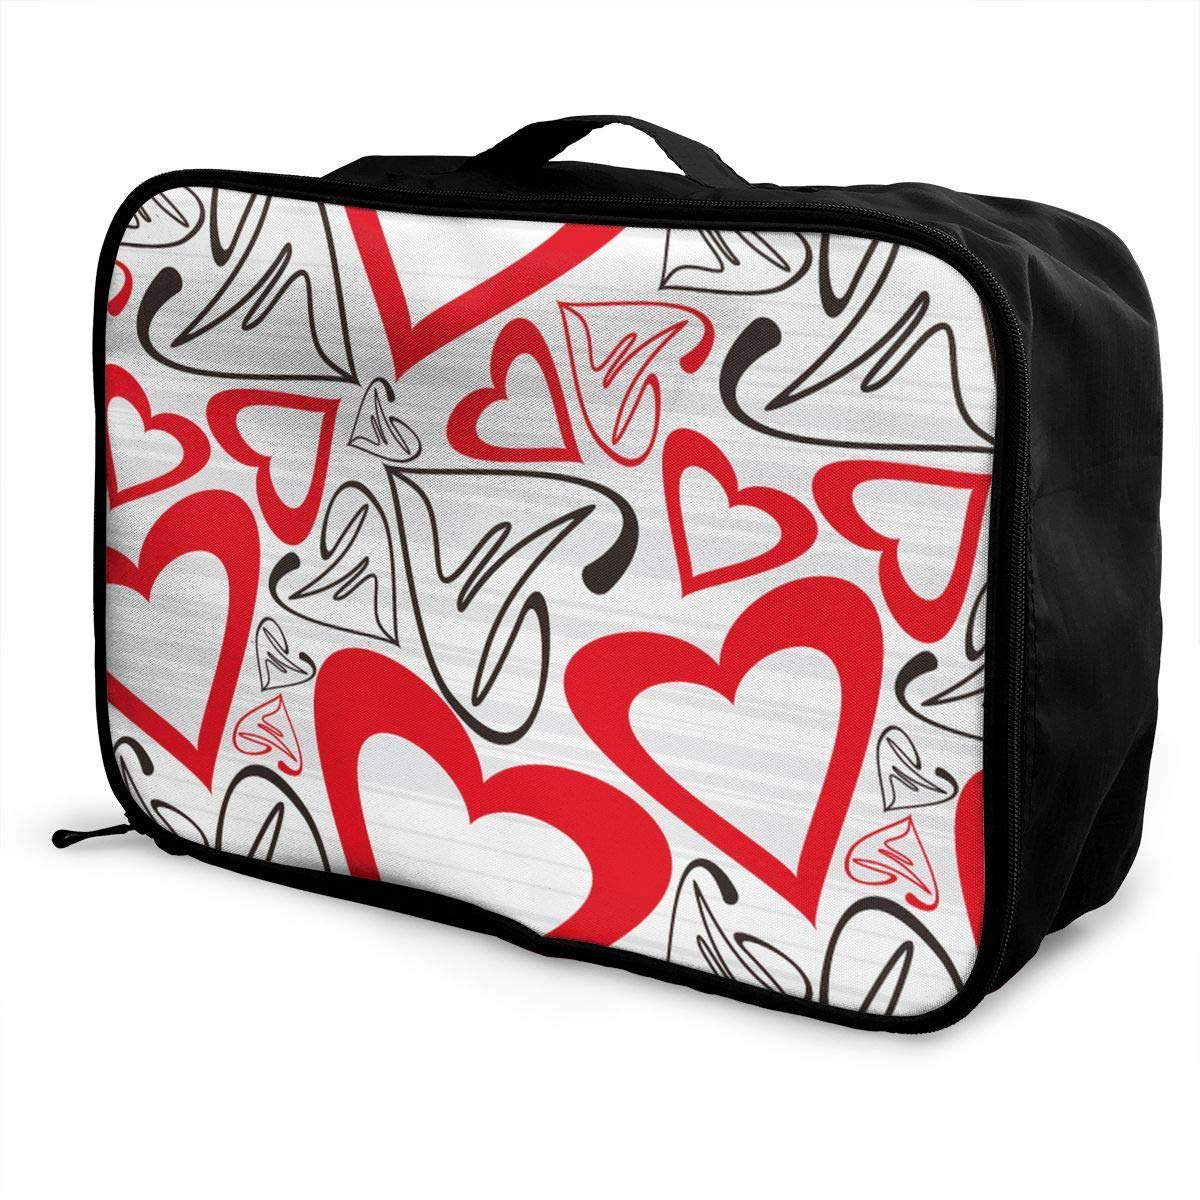 Travel Lightweight Waterproof Foldable Storage Carry Luggage Duffle Tote Bag JTRVW Luggage Bags for Travel Abstract Love Heart Ecg